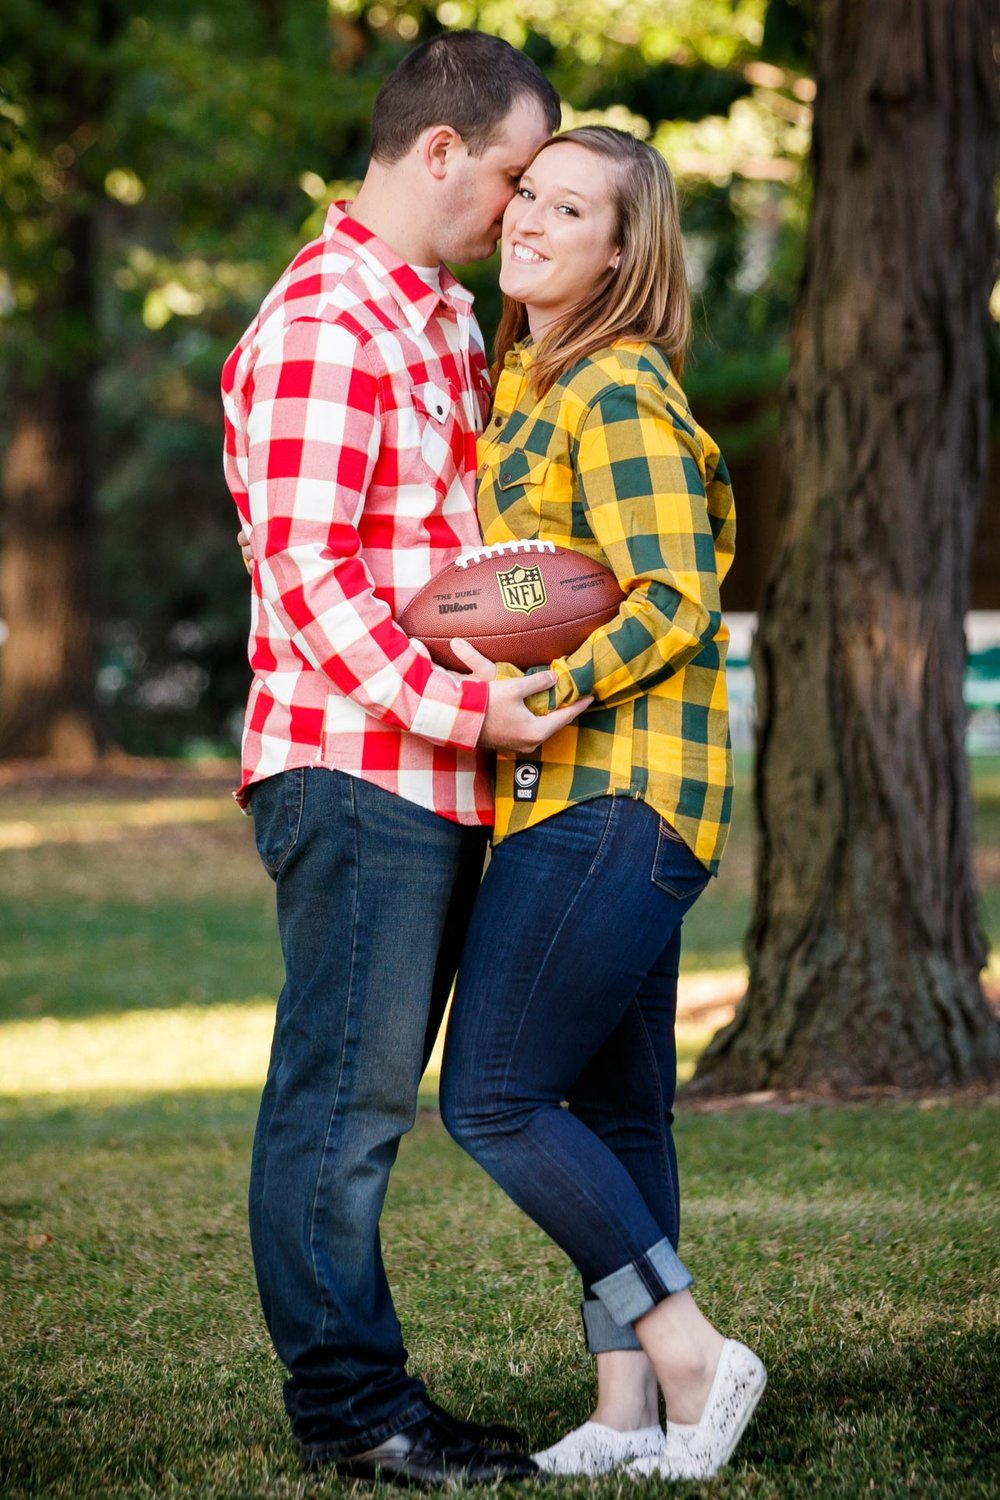 engagement-photos-riverside-park-neenah-adam-shea-photography-green-bay-appleton-neenah-photographer-12.jpg